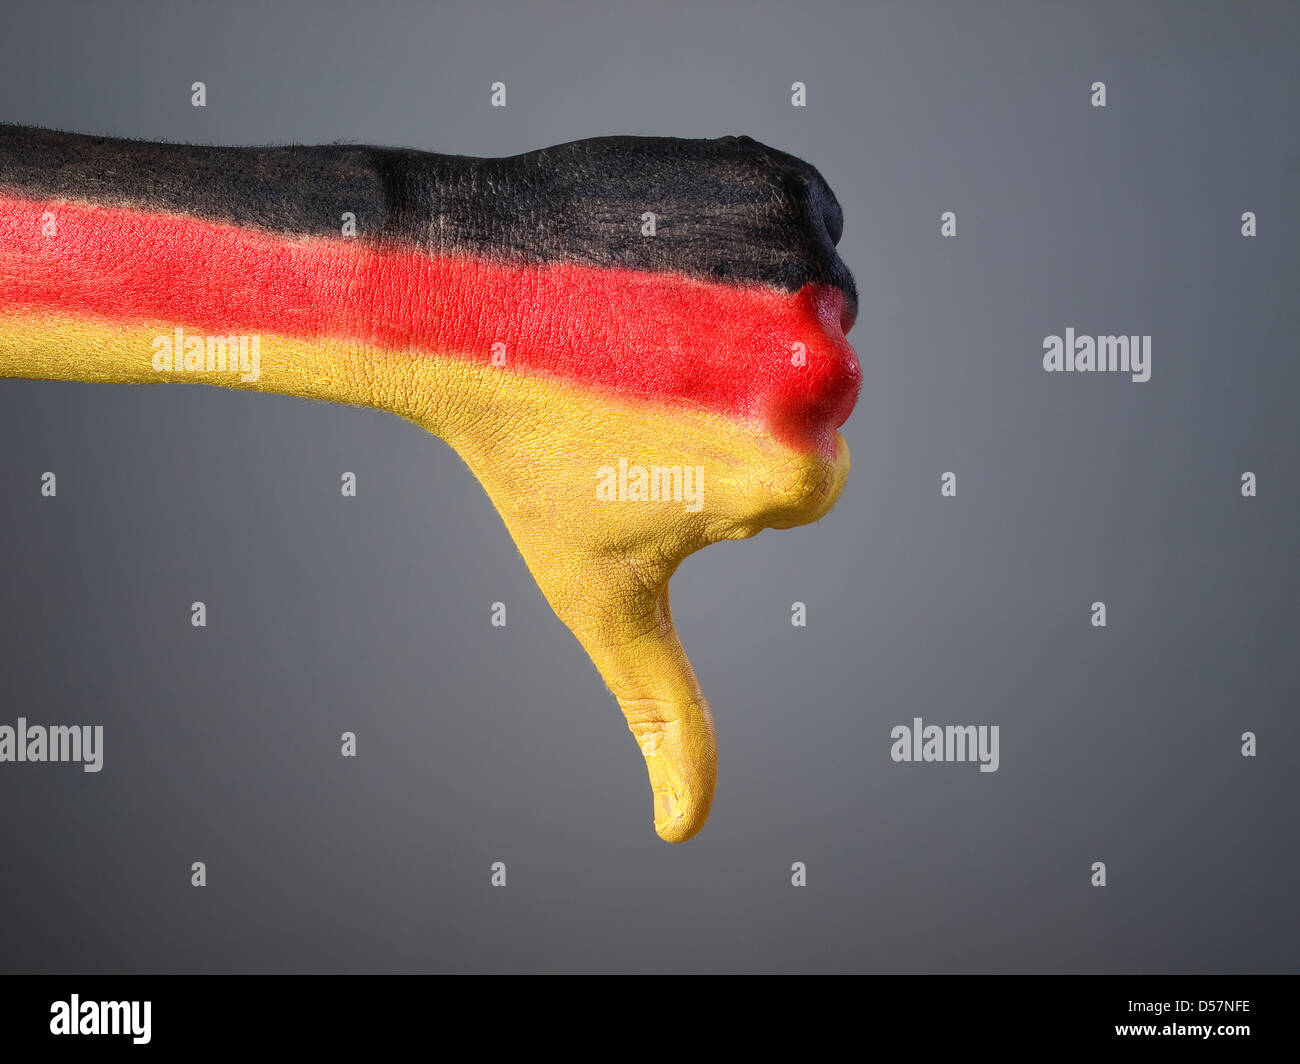 Hand painted with the flag of Germany, expressing negativity and isolated on gray background Stock Photo